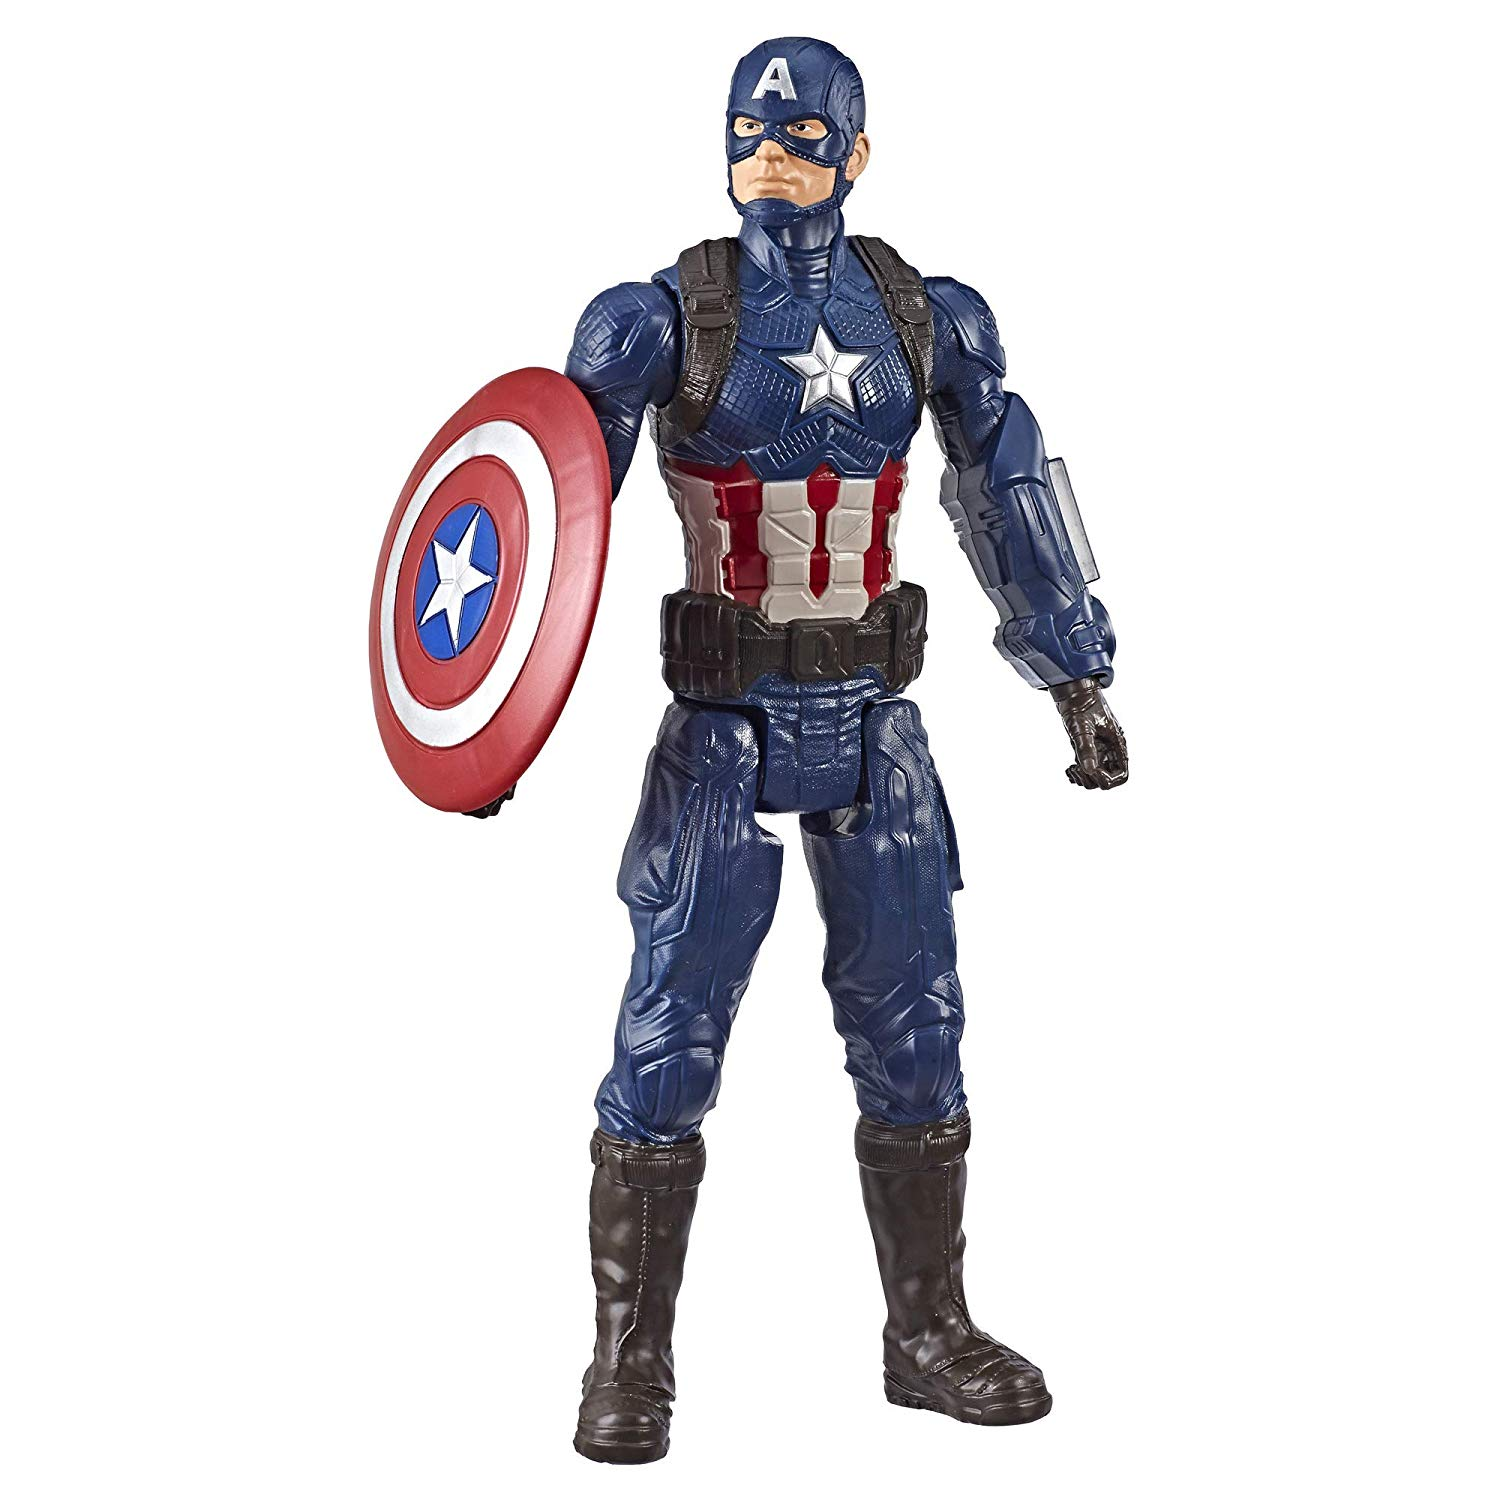 Avengers Marvel Captain America Marvel Super Hero Action Figure Toy